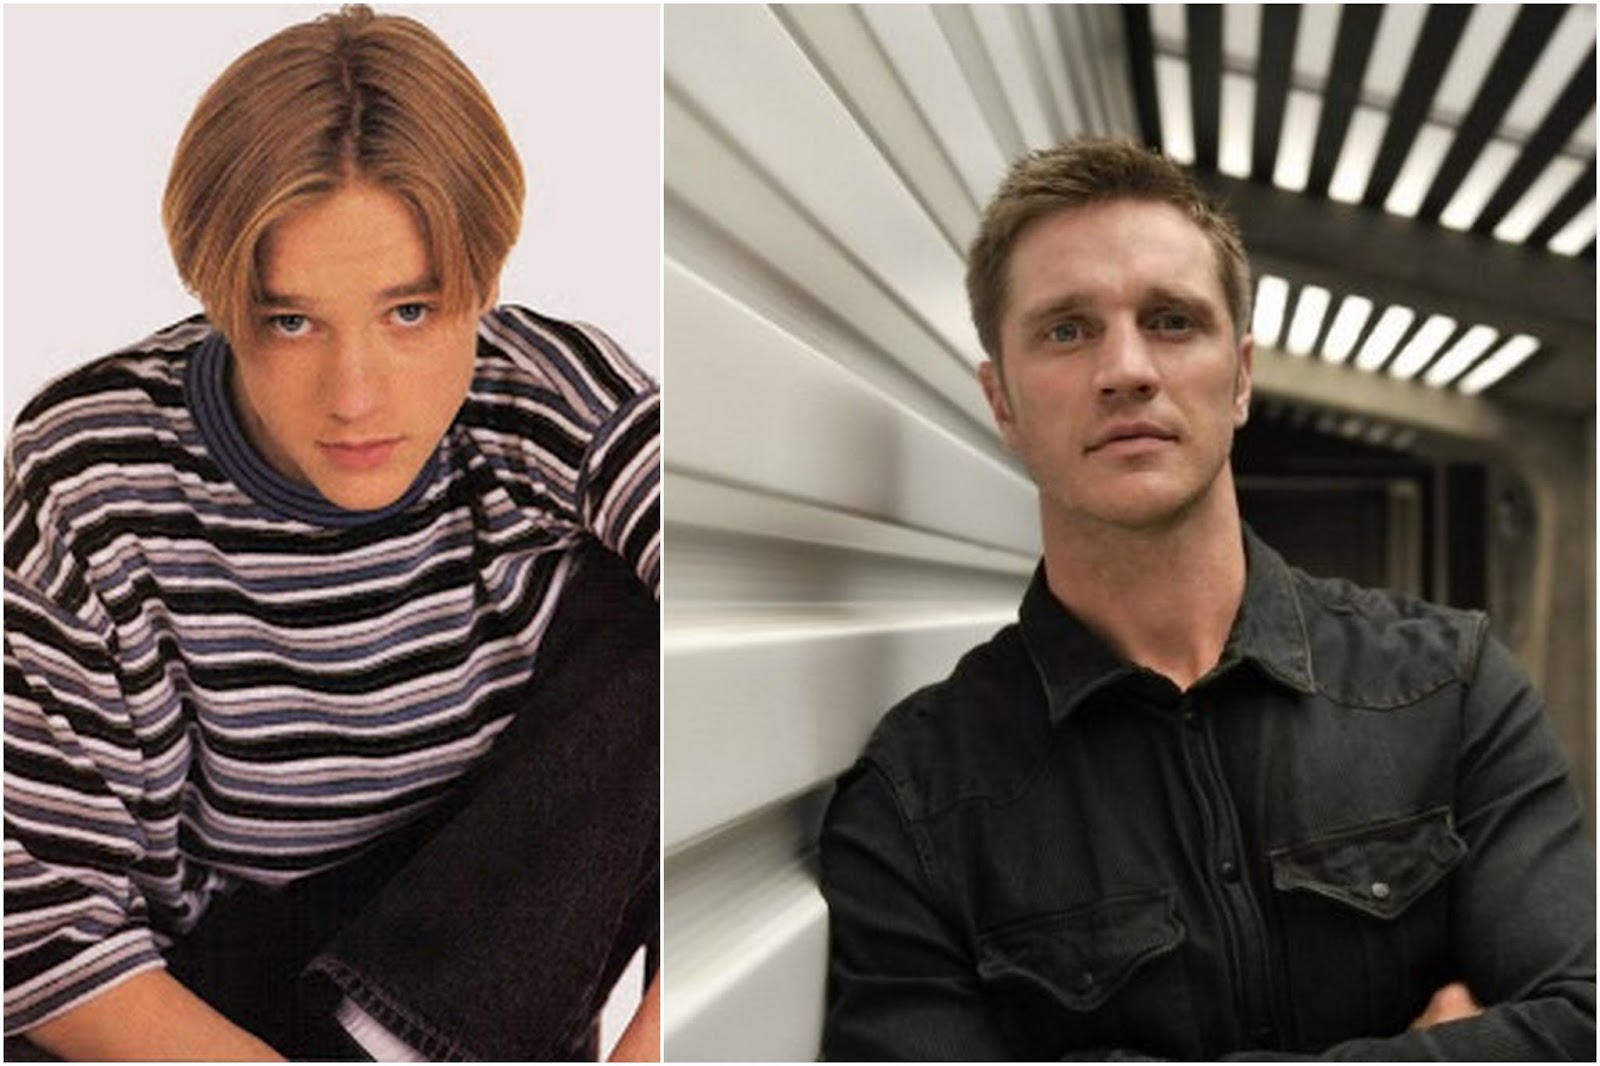 Devon Sawa Now And Then | www.galleryhip.com - The Hippest Pics